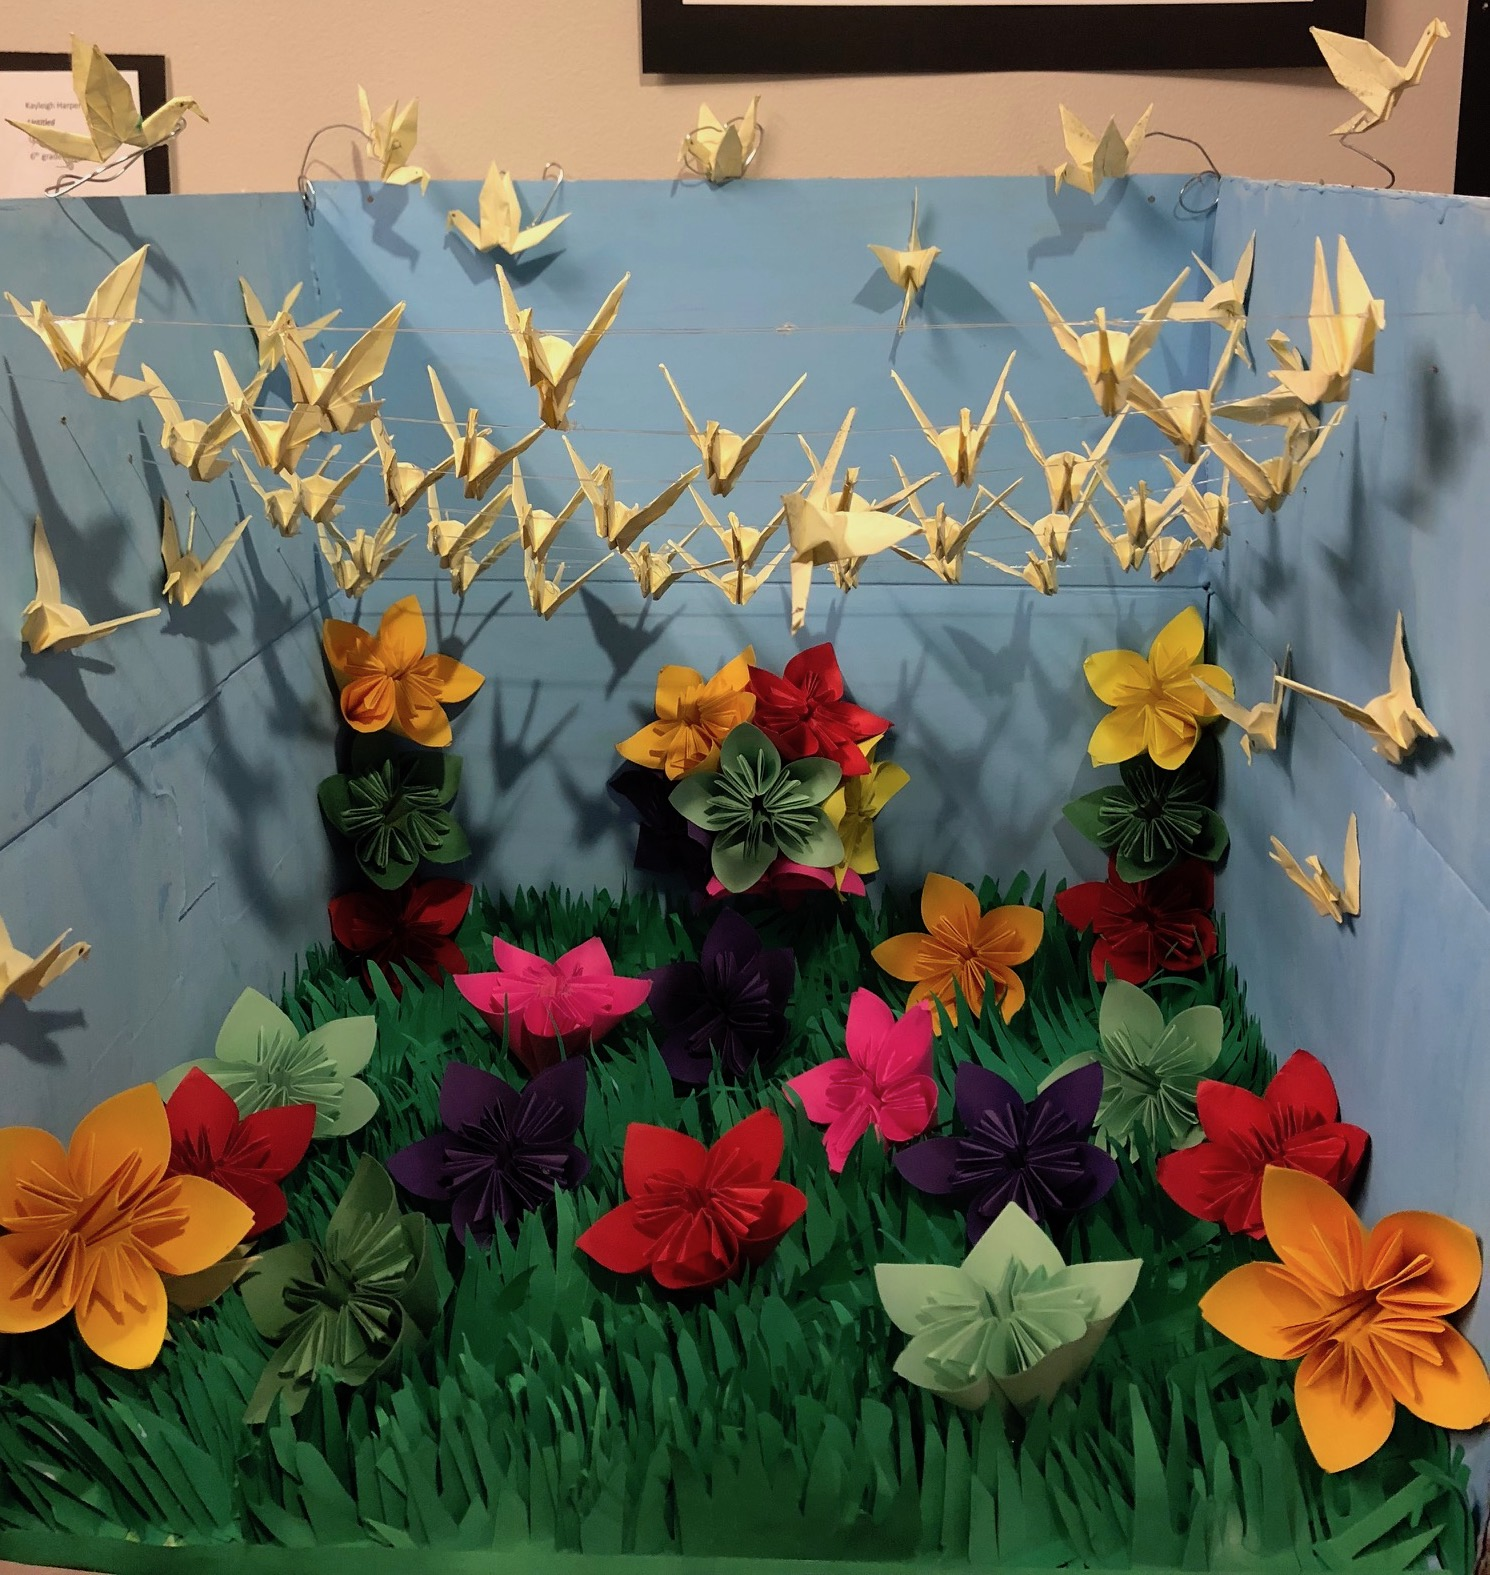 Origami diorama of flowers, grass and cranes.